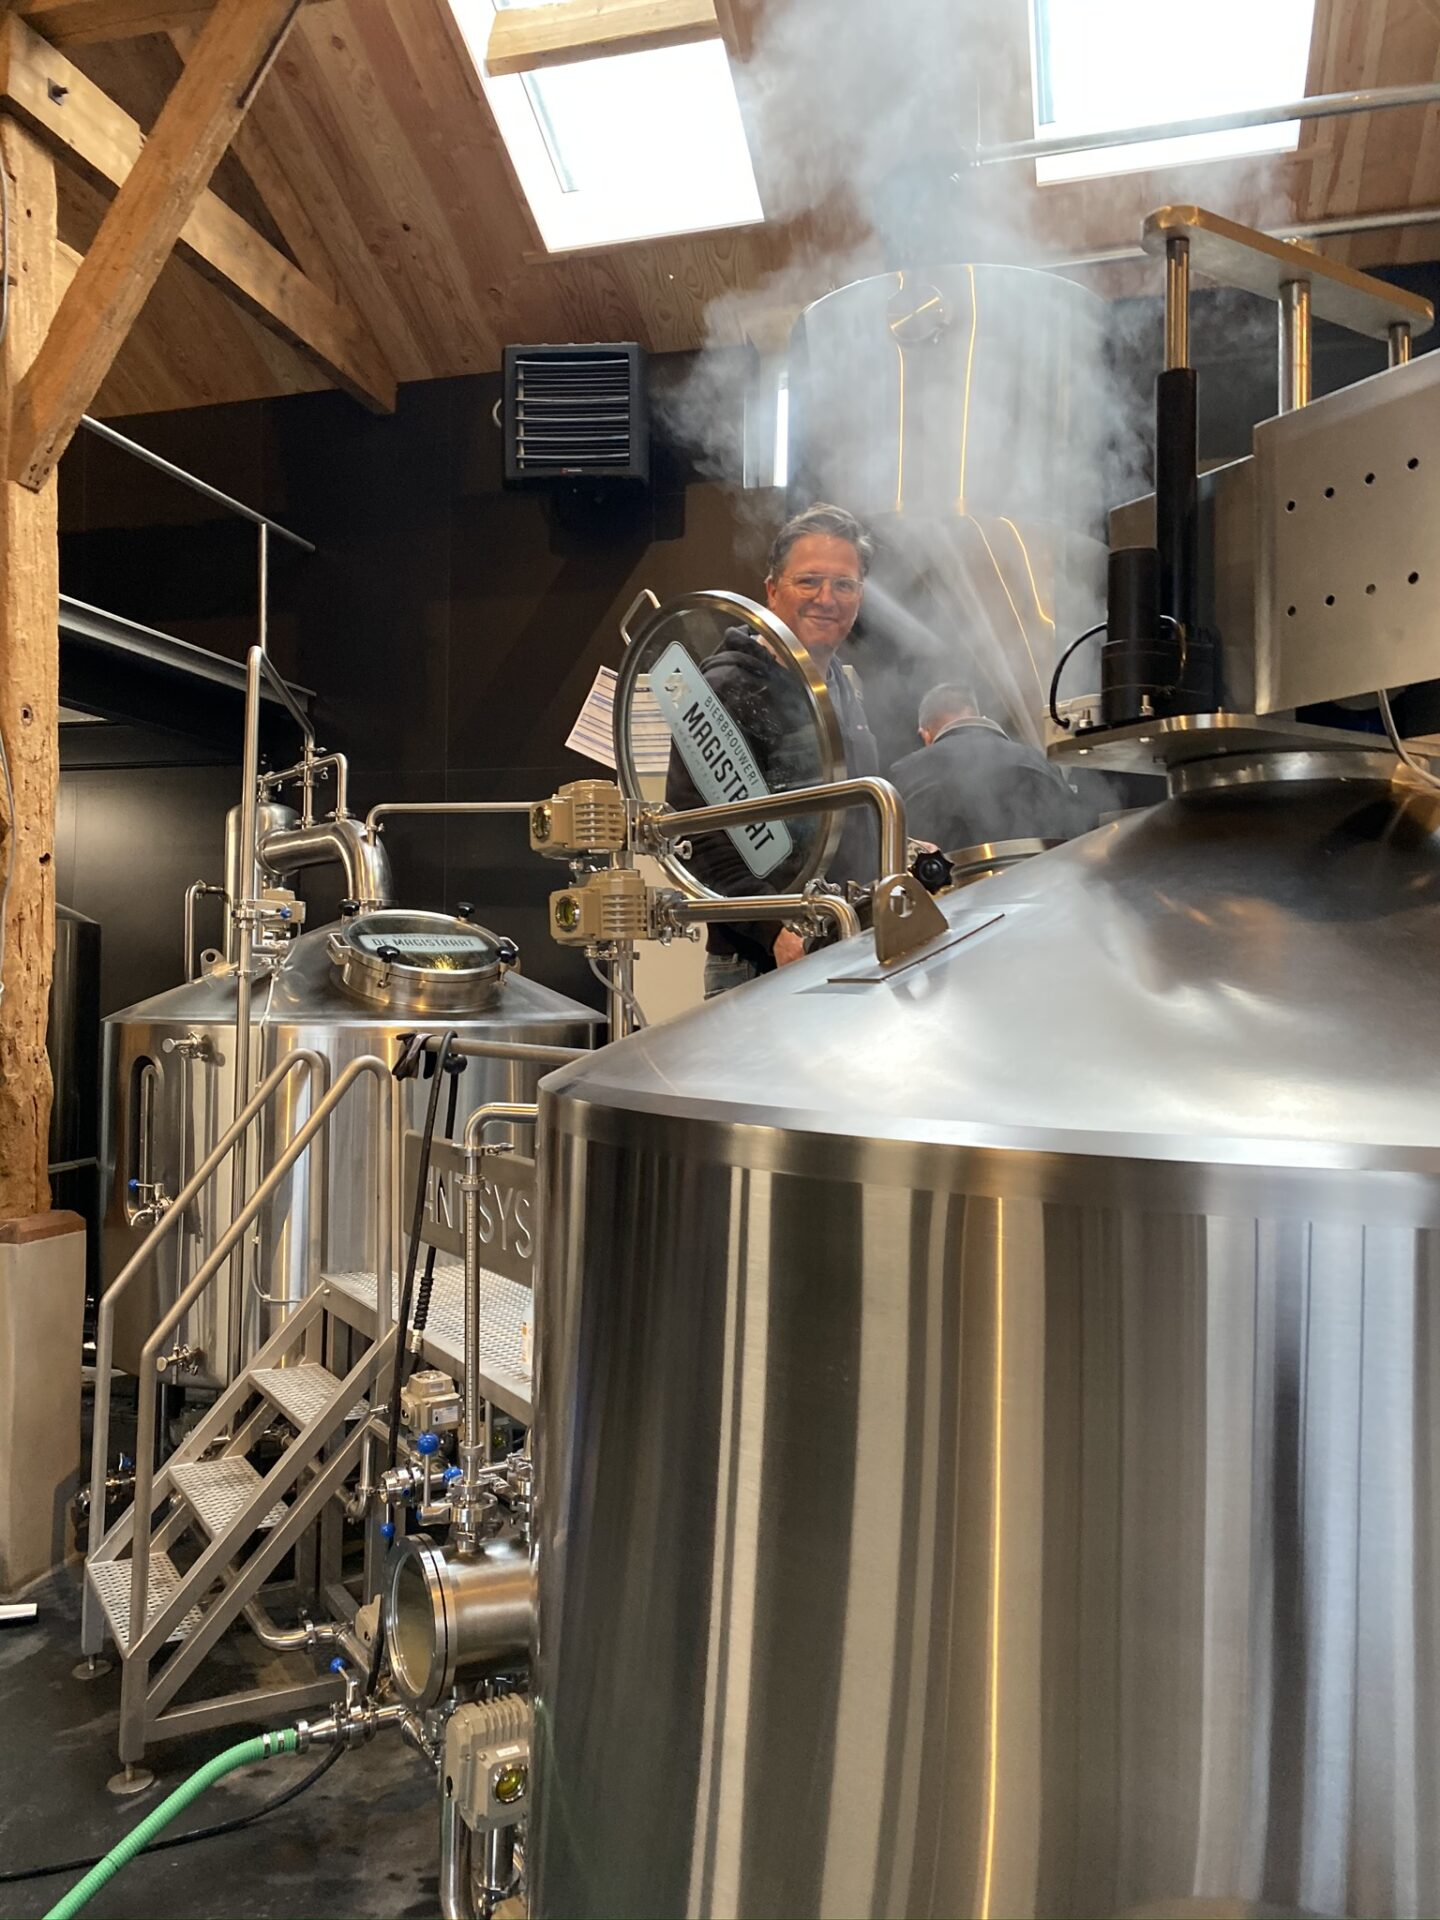 https://i2.wp.com/www.bierbrouwerijdemagistraat.nl/wp-content/uploads/2020/04/0455165F-5863-42DD-9FB5-0A7AF818BE78.jpg?fit=1536%2C2048&ssl=1